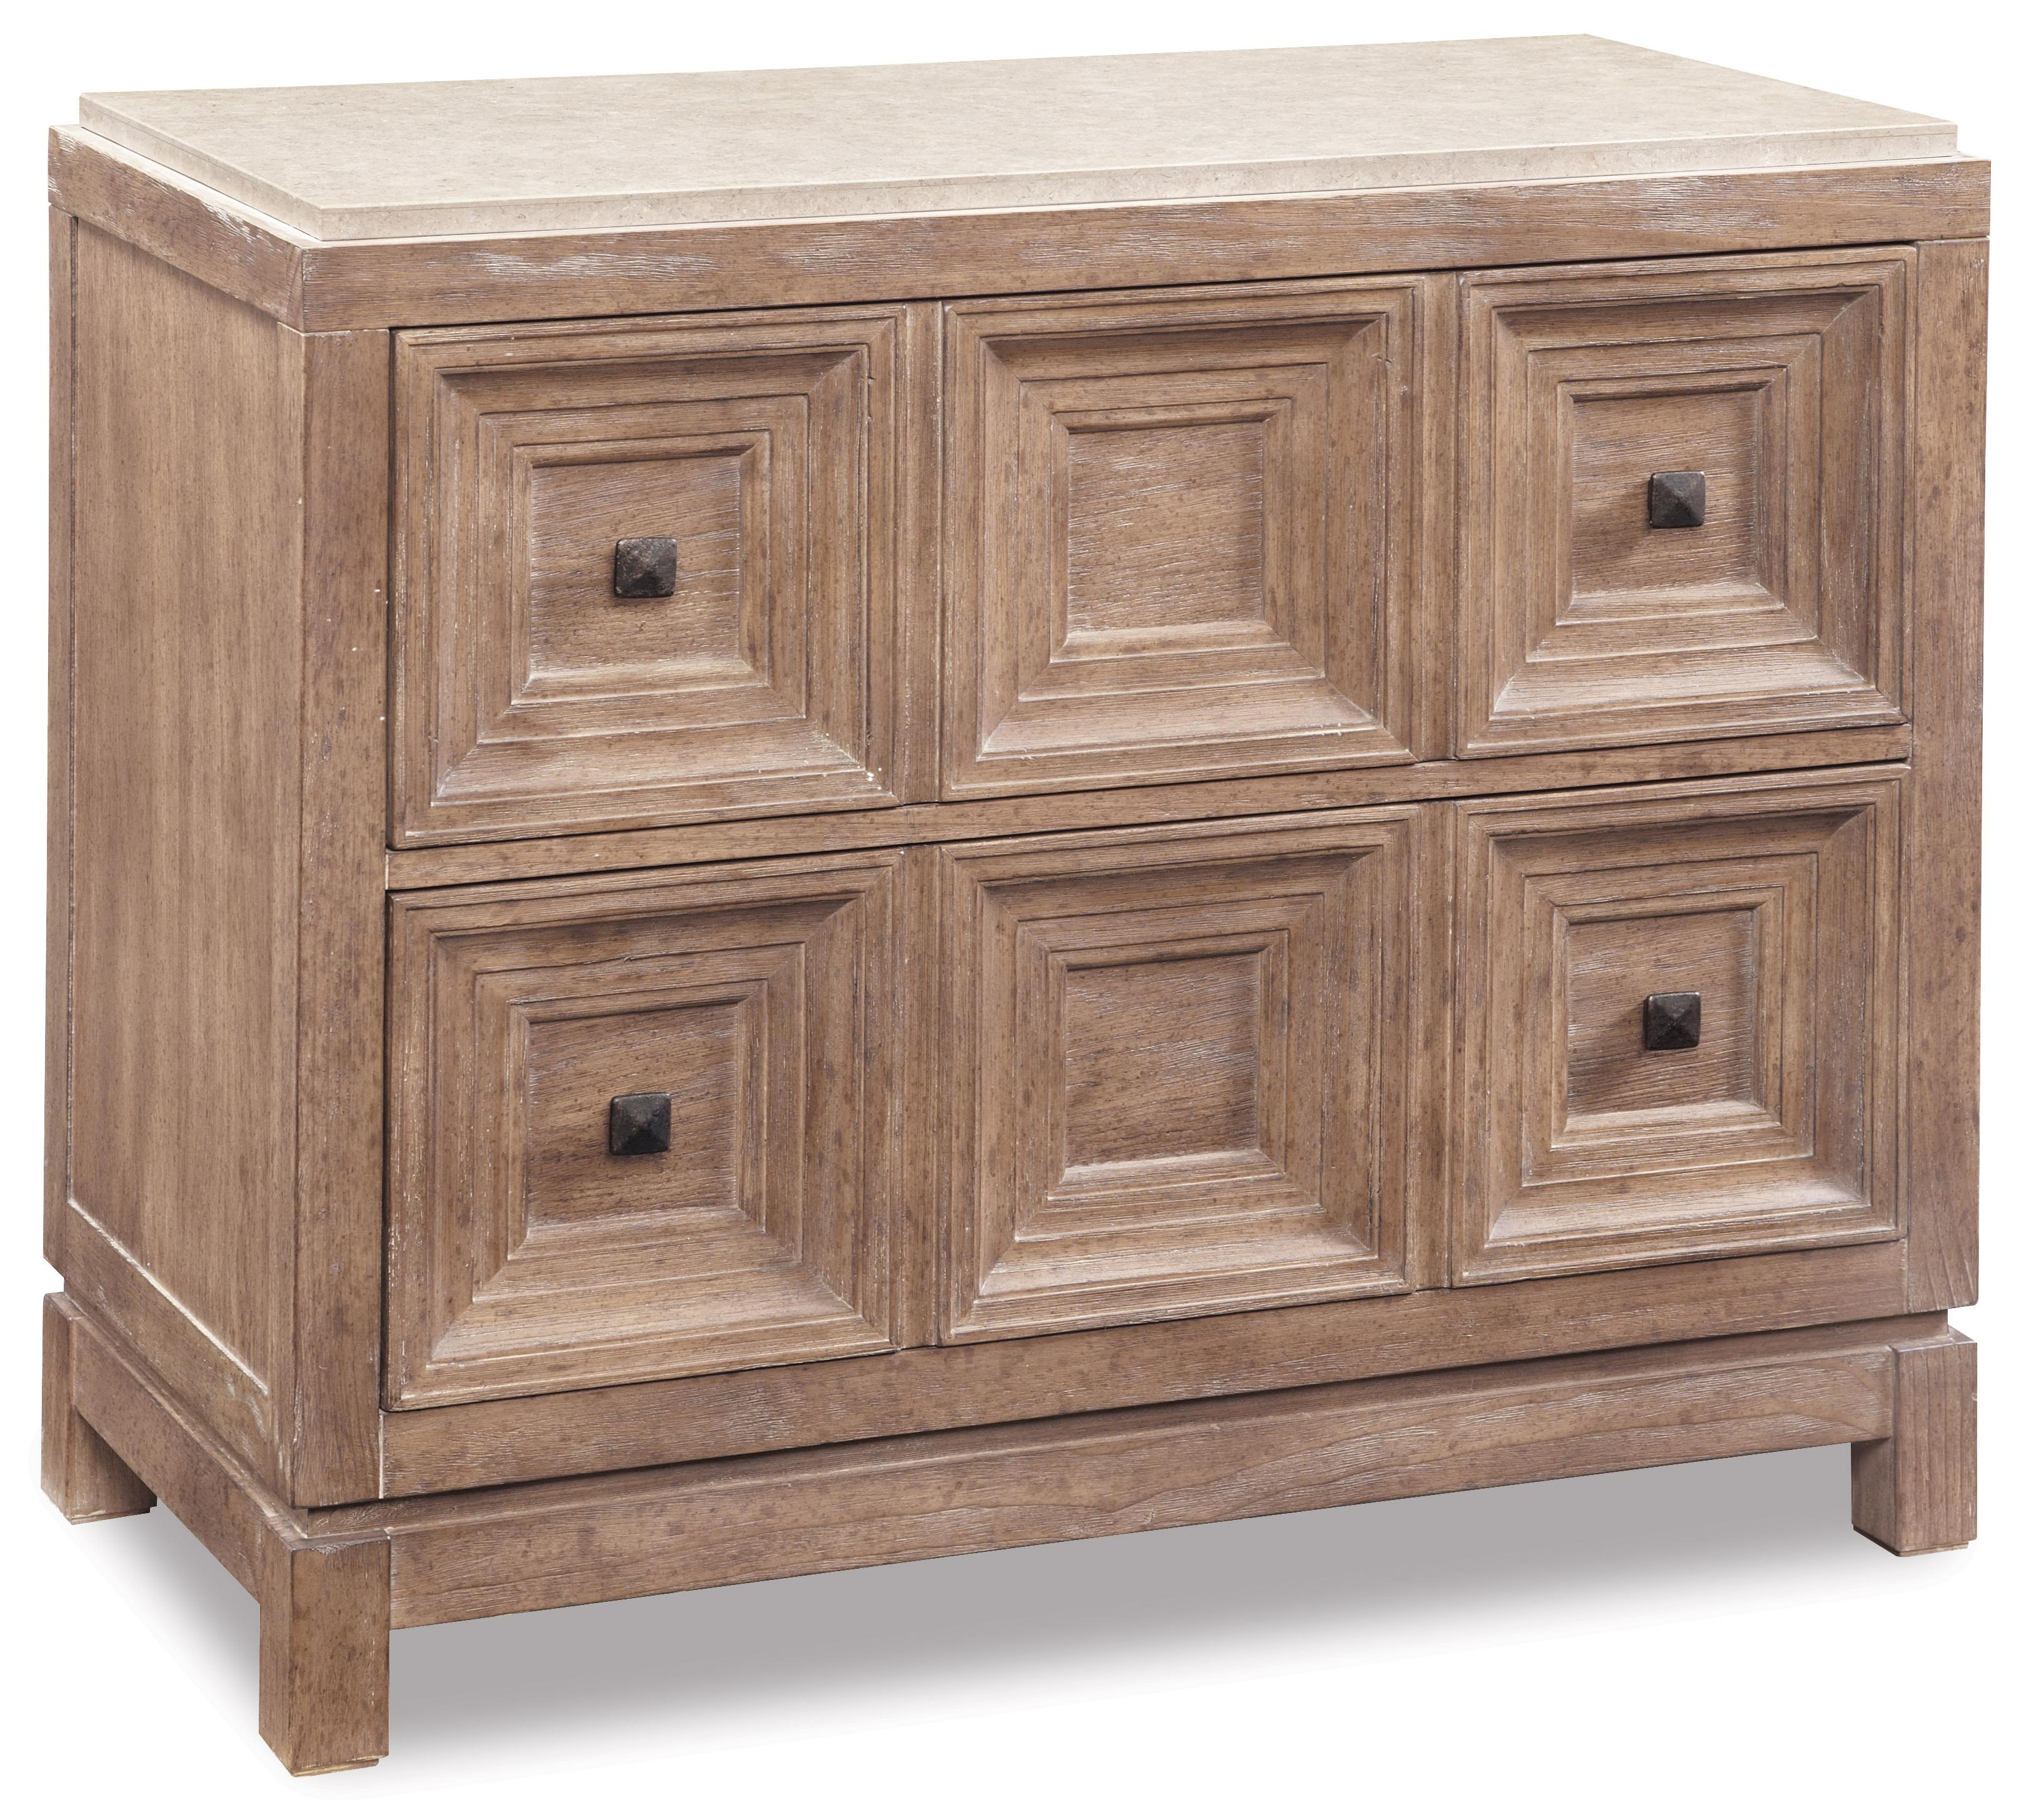 Belfort Signature Madera Bachelors Chest Stone Top - Item Number: 192143-2303